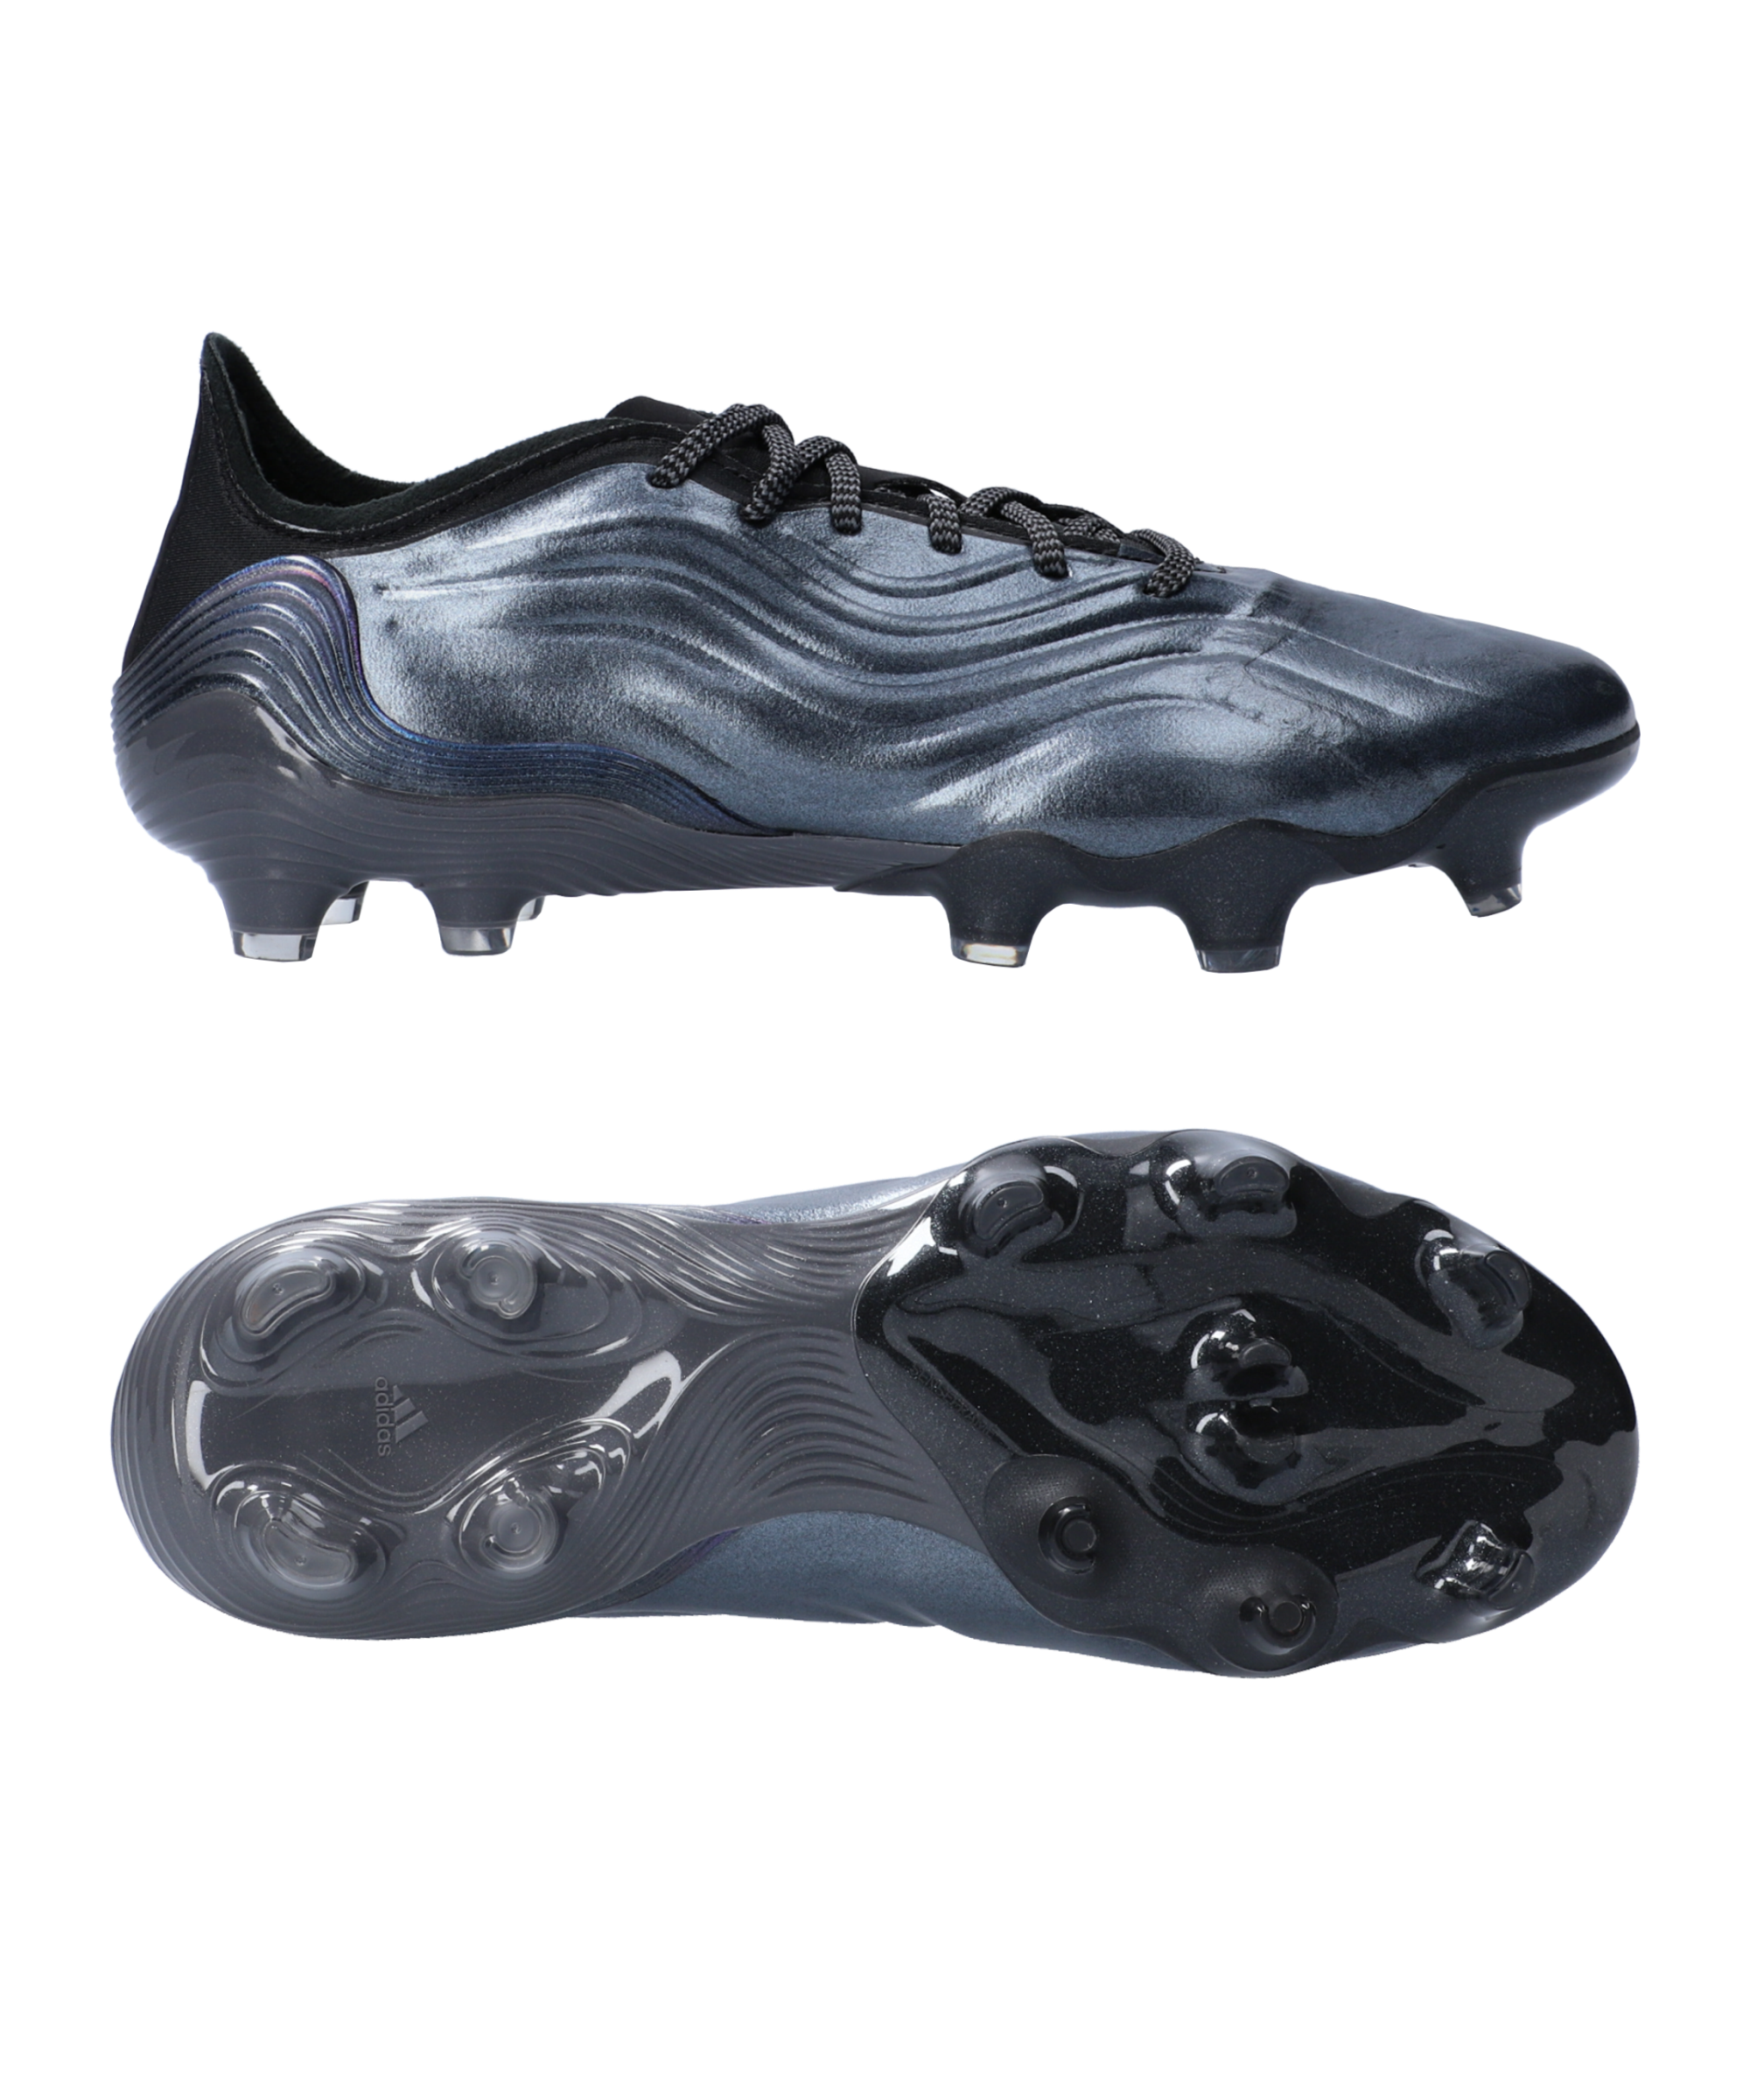 adidas COPA SENSE.1 Superstealth FG